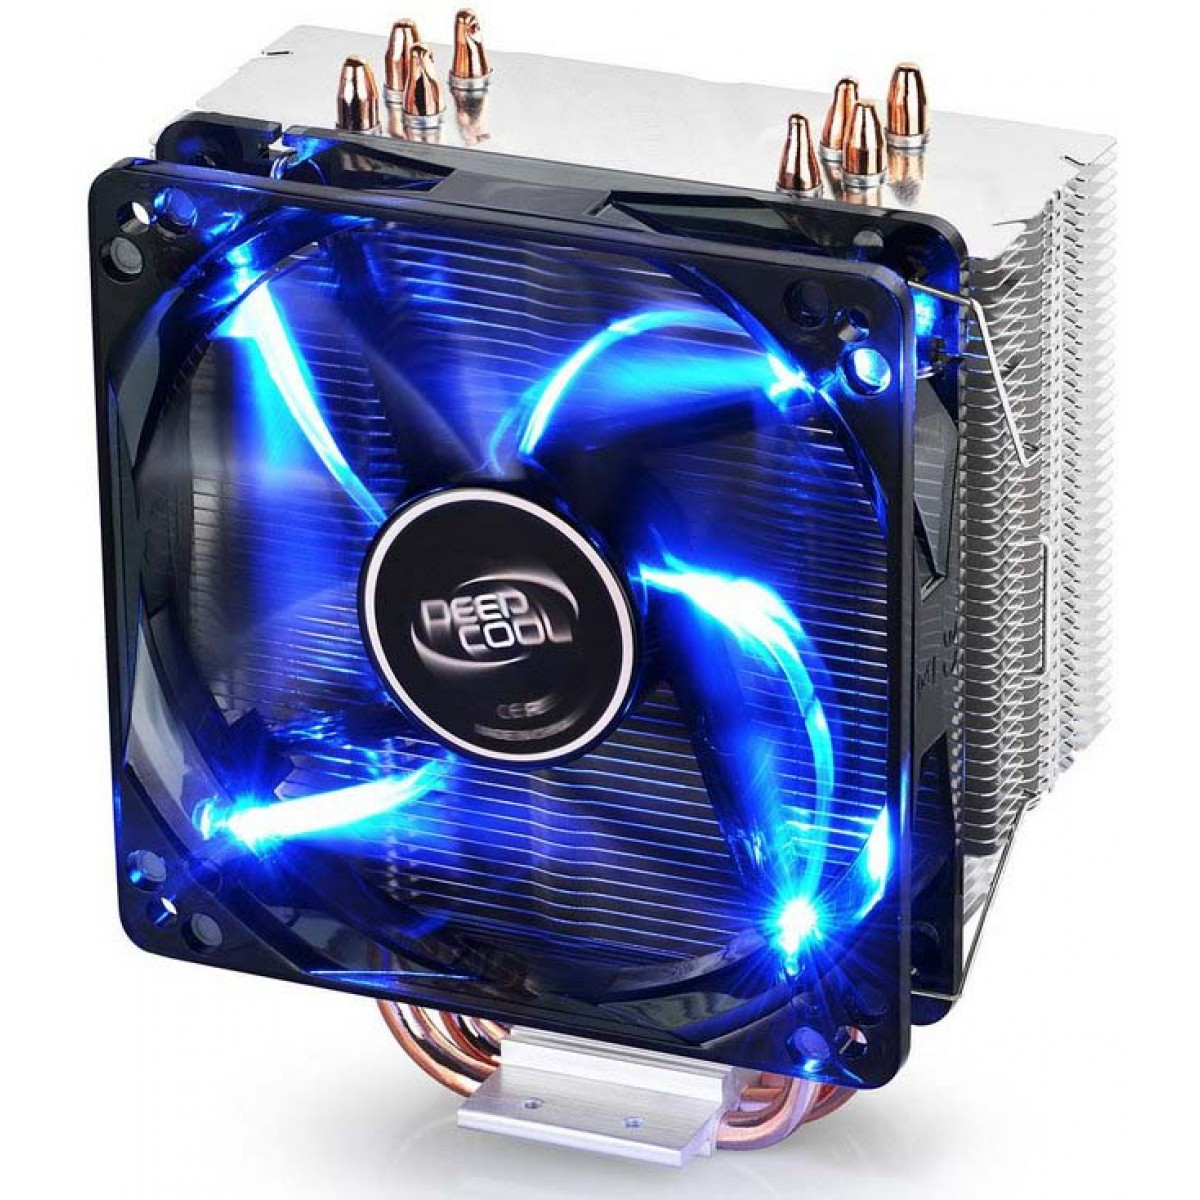 Cooler para Processador DeepCool Gammaxx 400, LED Blue 120mm, Intel-AMD, DP-MCH4-GMX400P-BL